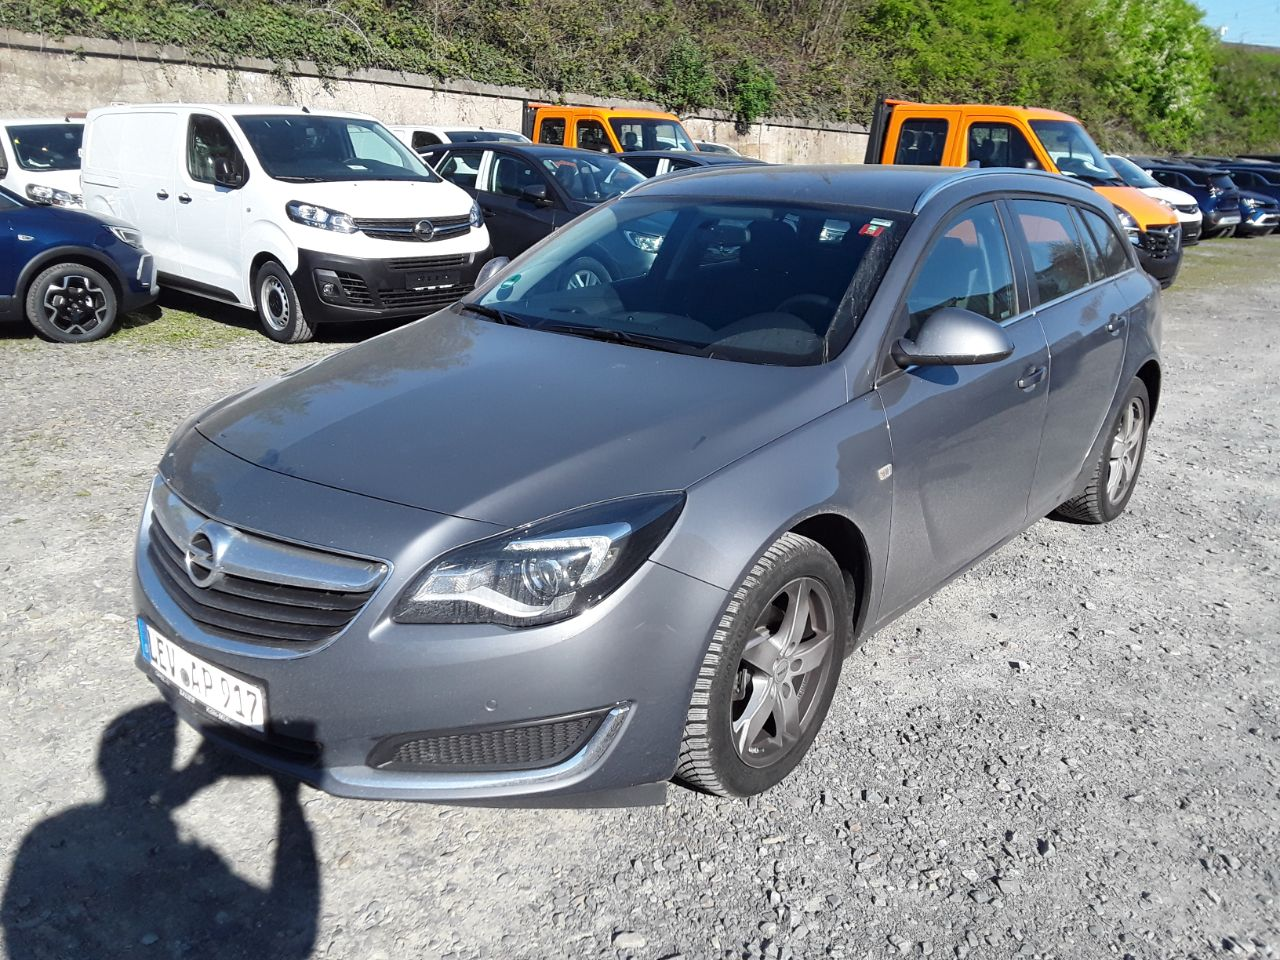 Opel Insignia A Sports Tourer Edition 1.6 CDTI 100KW AT6 E6